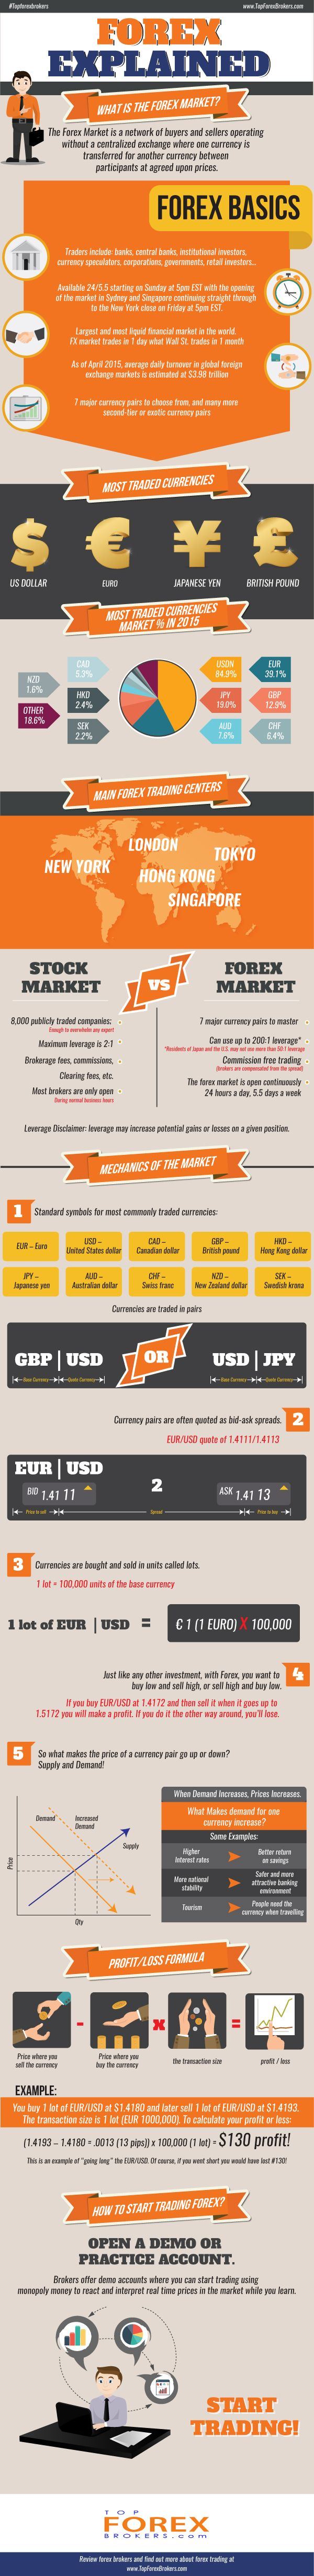 What is forex marketing #infographic